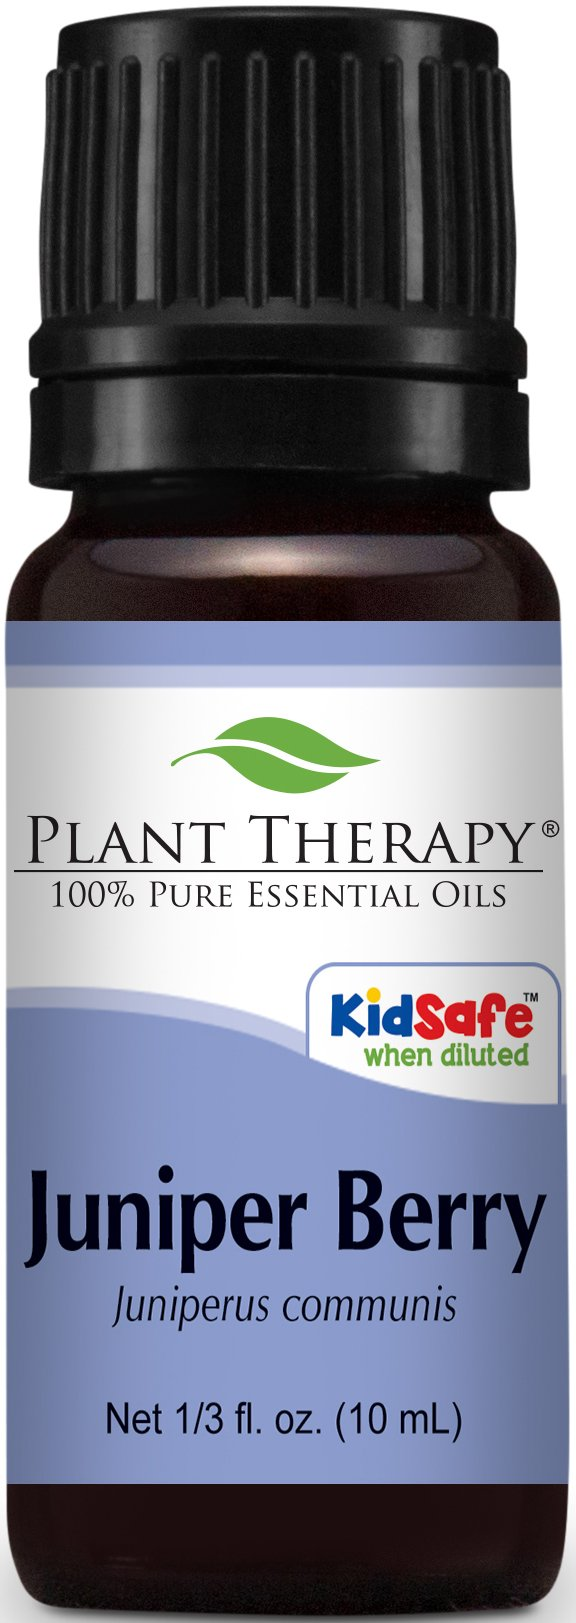 Plant Therapy Juniper Berry Essential Oil. 100% Pure, Undiluted, Therapeutic Grade. 10 ml (1/3 oz).